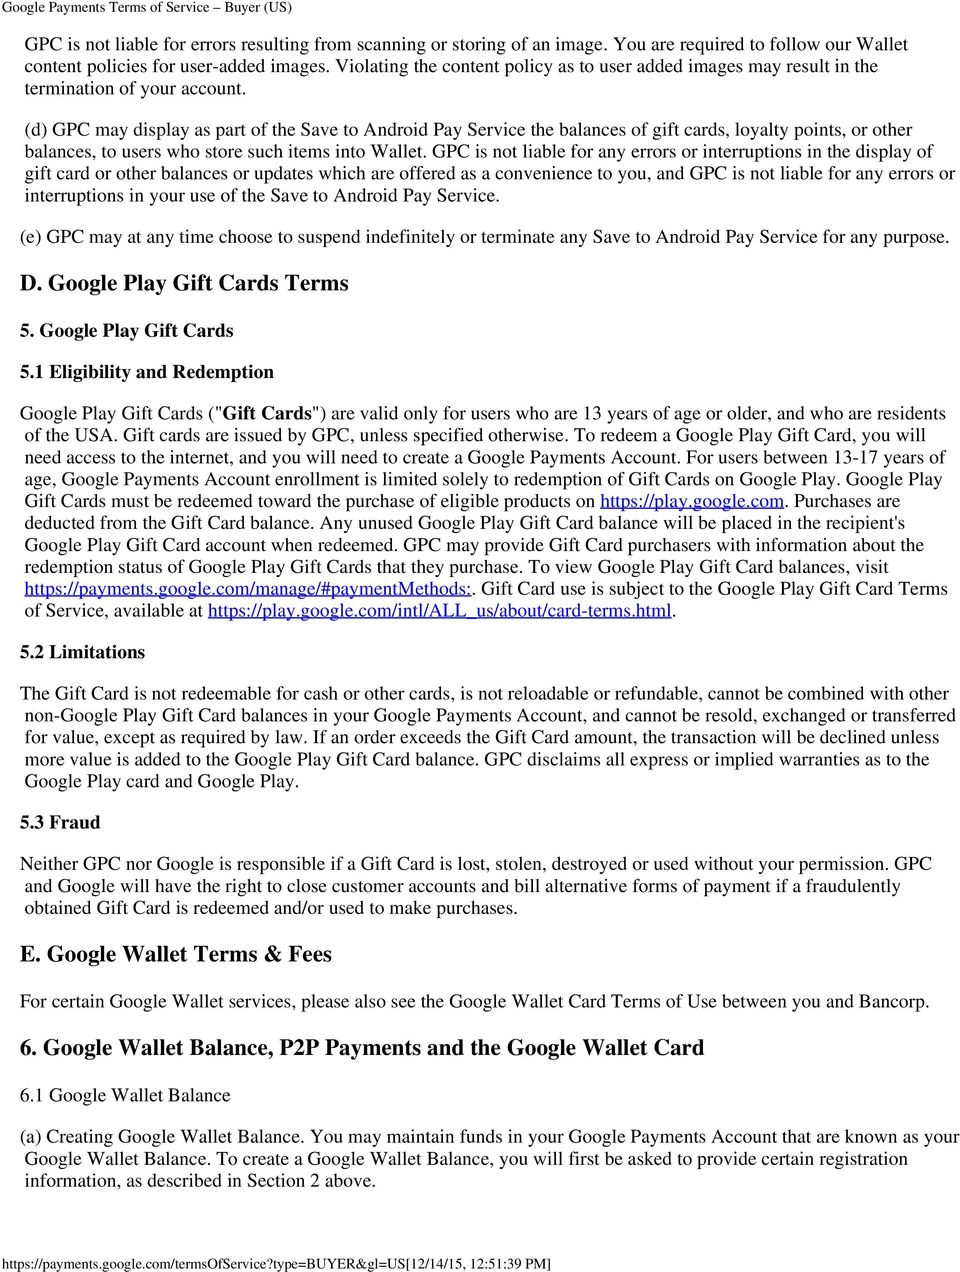 Google Payments Terms of Service Buyer (US) - PDF